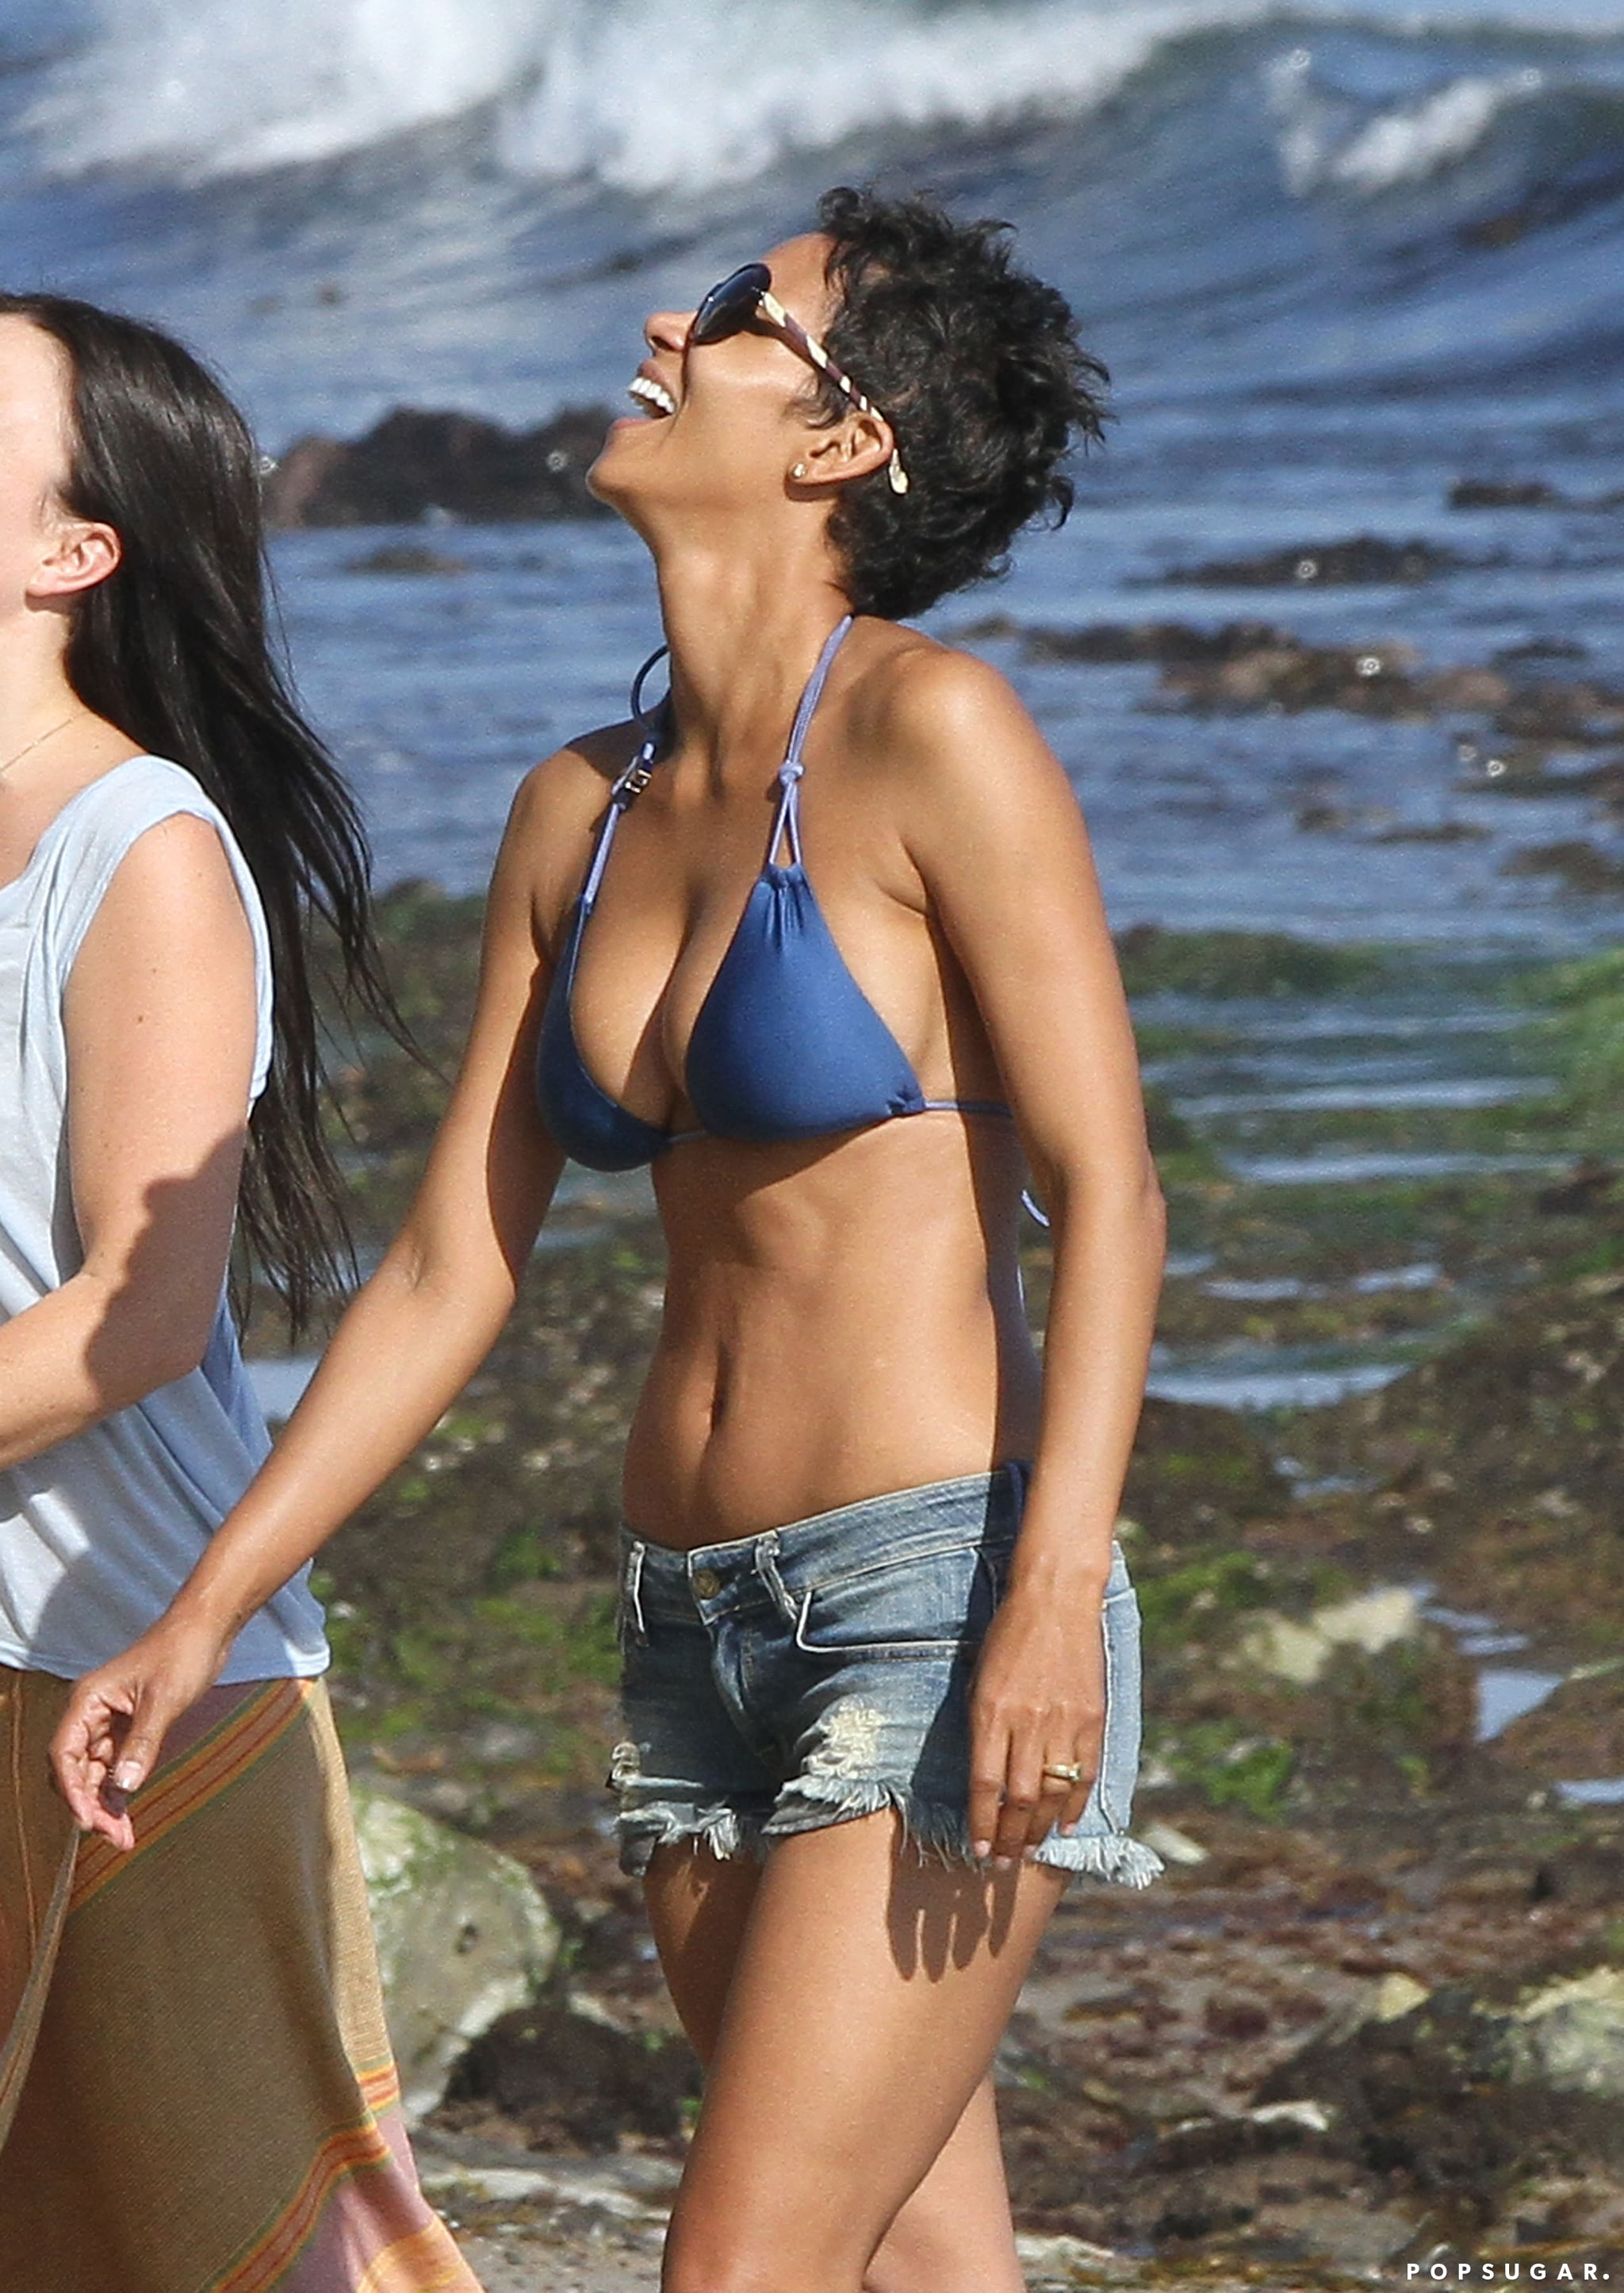 Halle Berry Bikini Pictures | POPSUGAR Celebrity